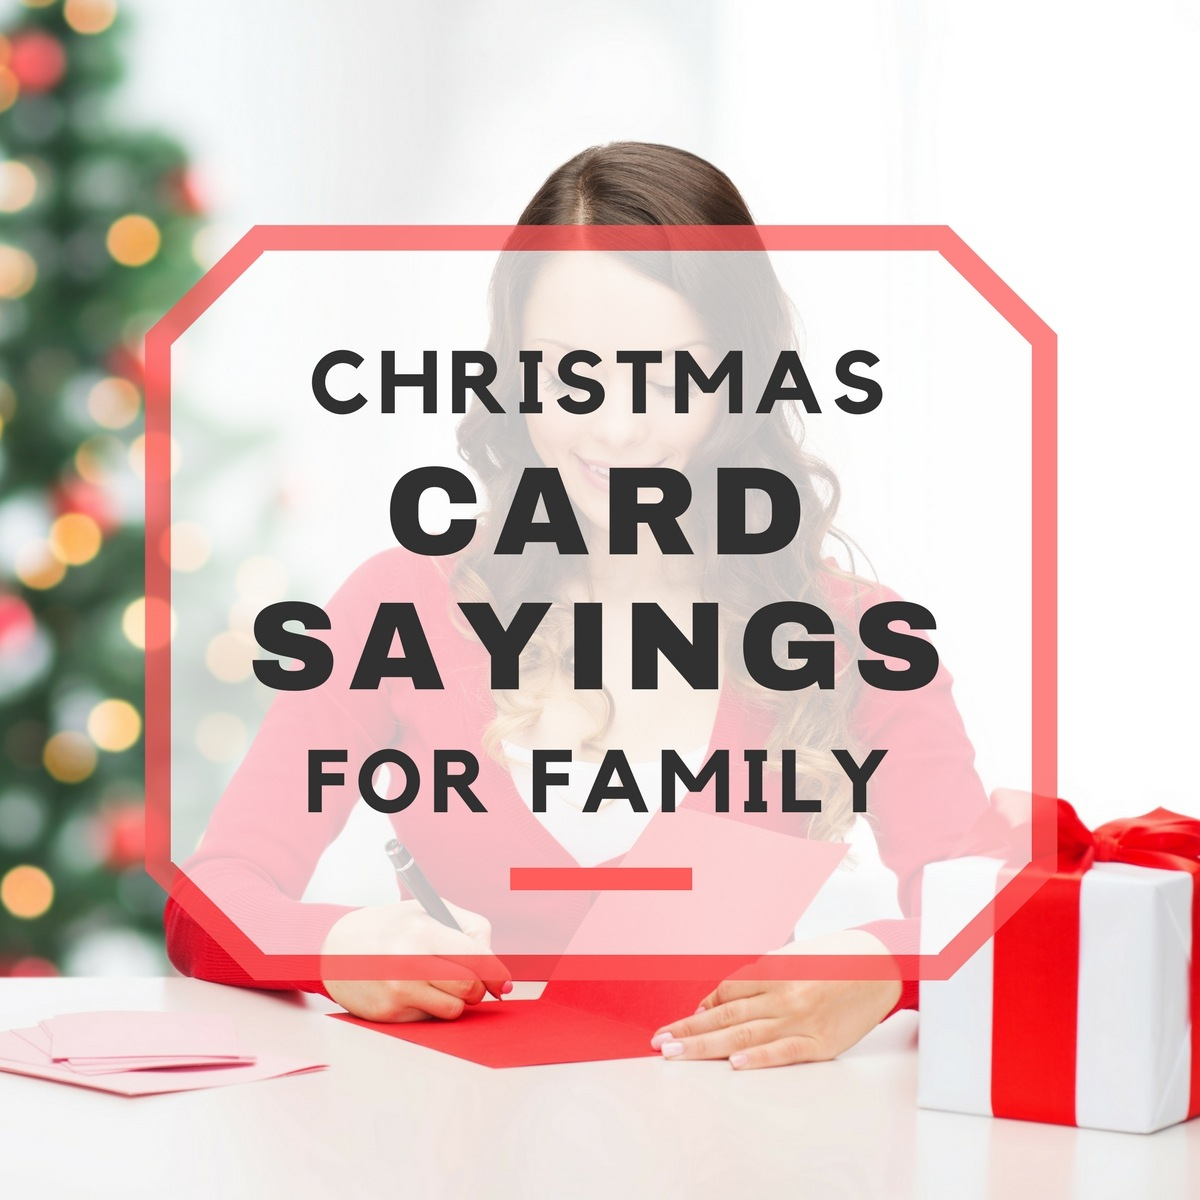 25 christmas card sayings for family - Christmas Card Wording